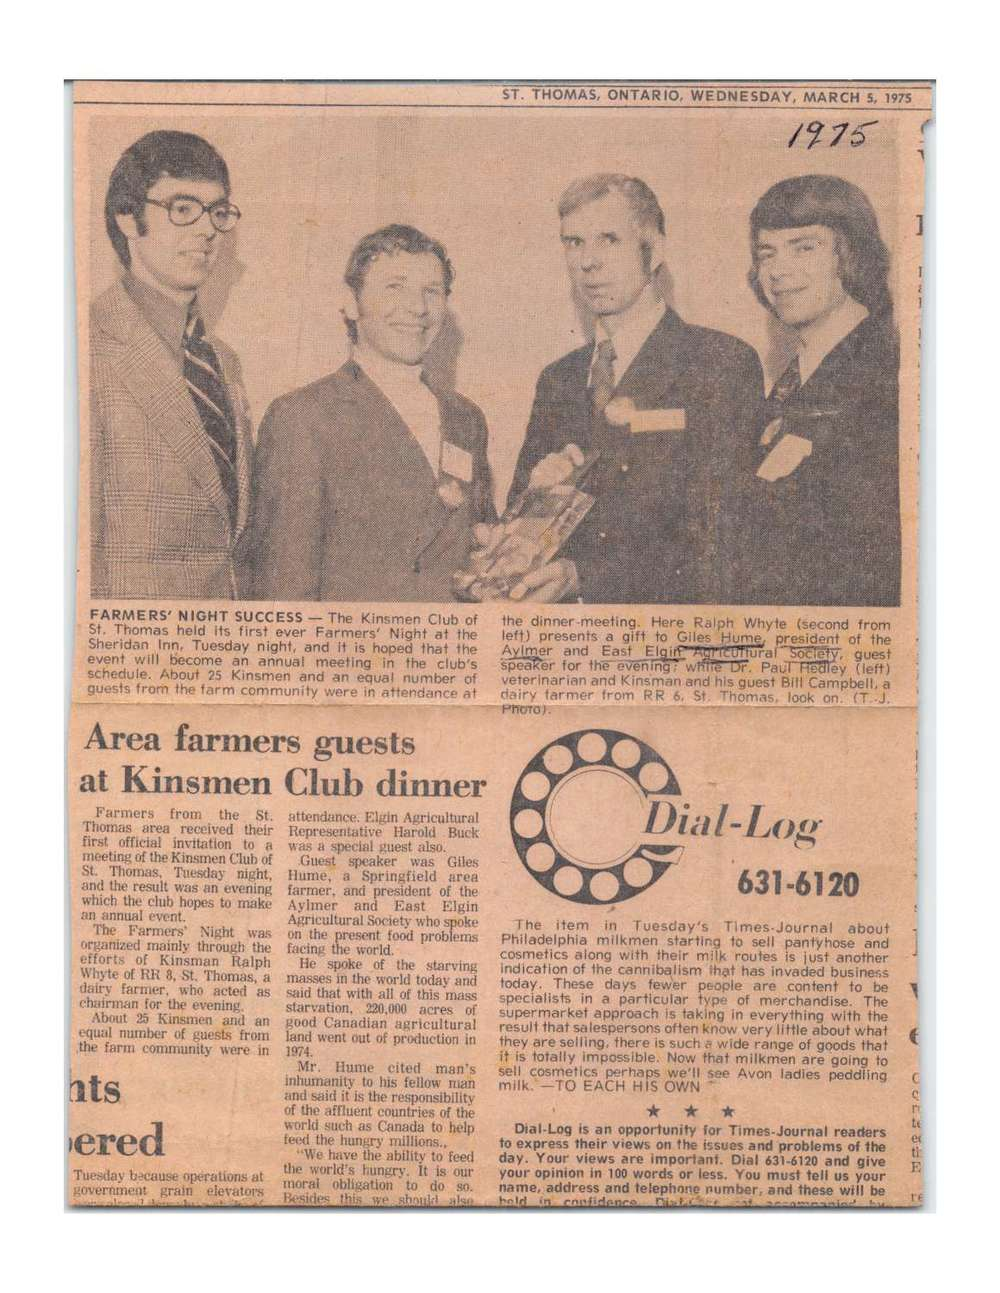 1975 - Kinsment Club Farmers night giles guest speaker-1500.jpg